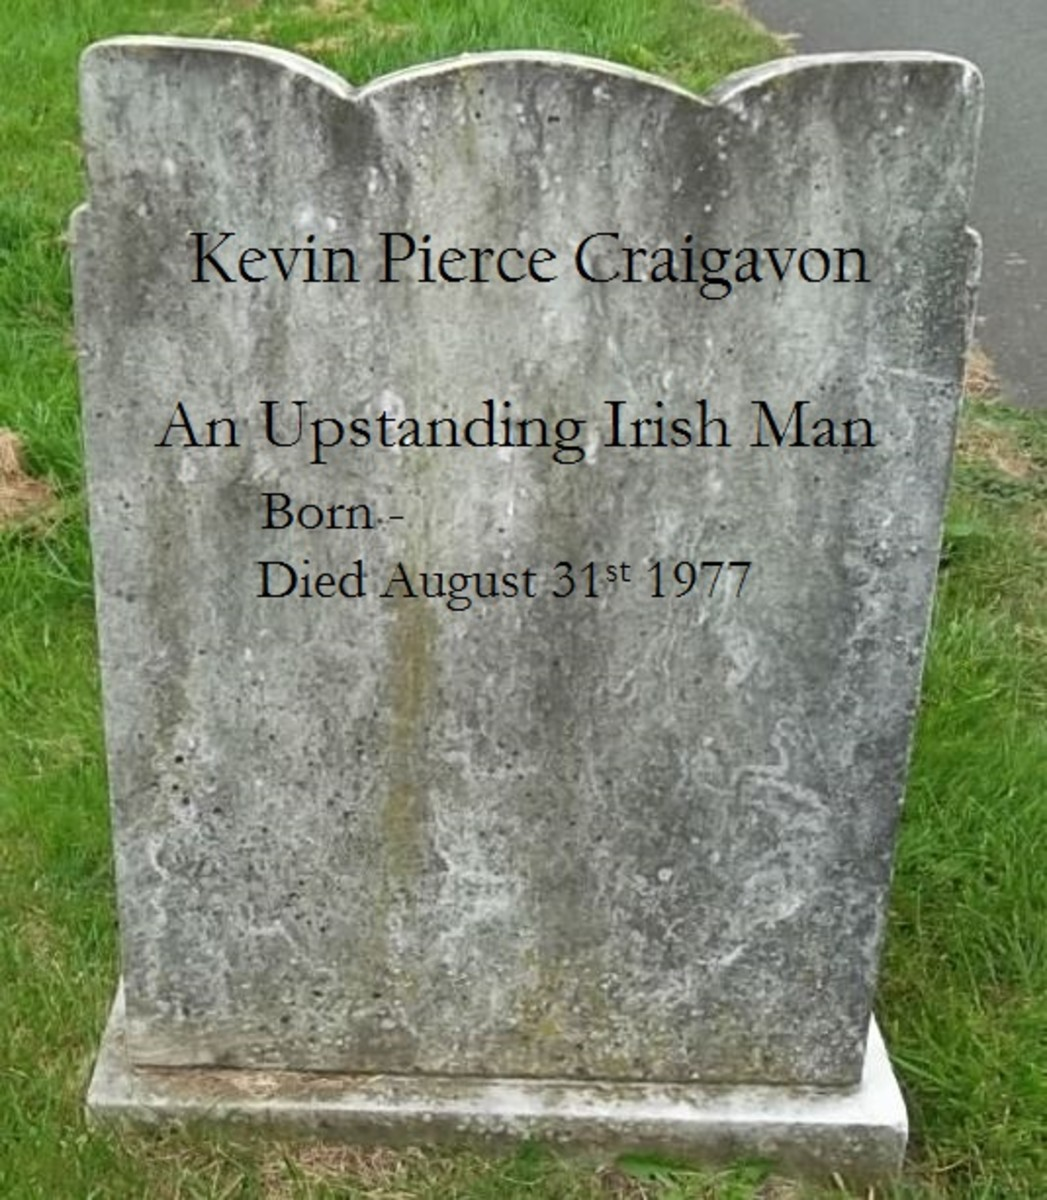 The epitaph: An Upstanding Irish Man. The date of birth entry has been left unfilled